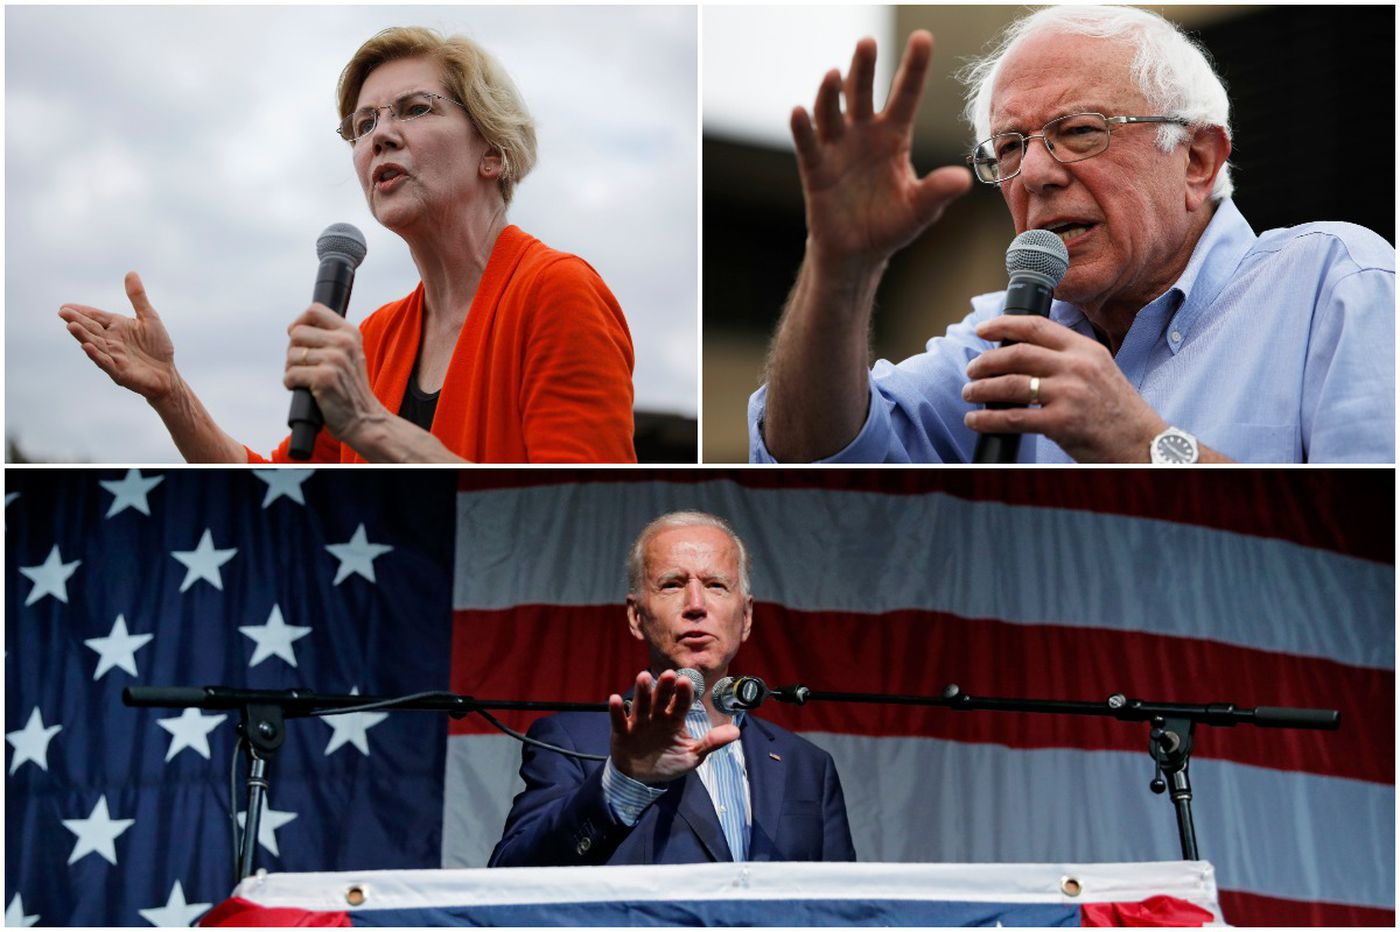 Biden, Warren, and Sanders lead nearly every poll, but insiders say the 2020 Democratic race isn't over